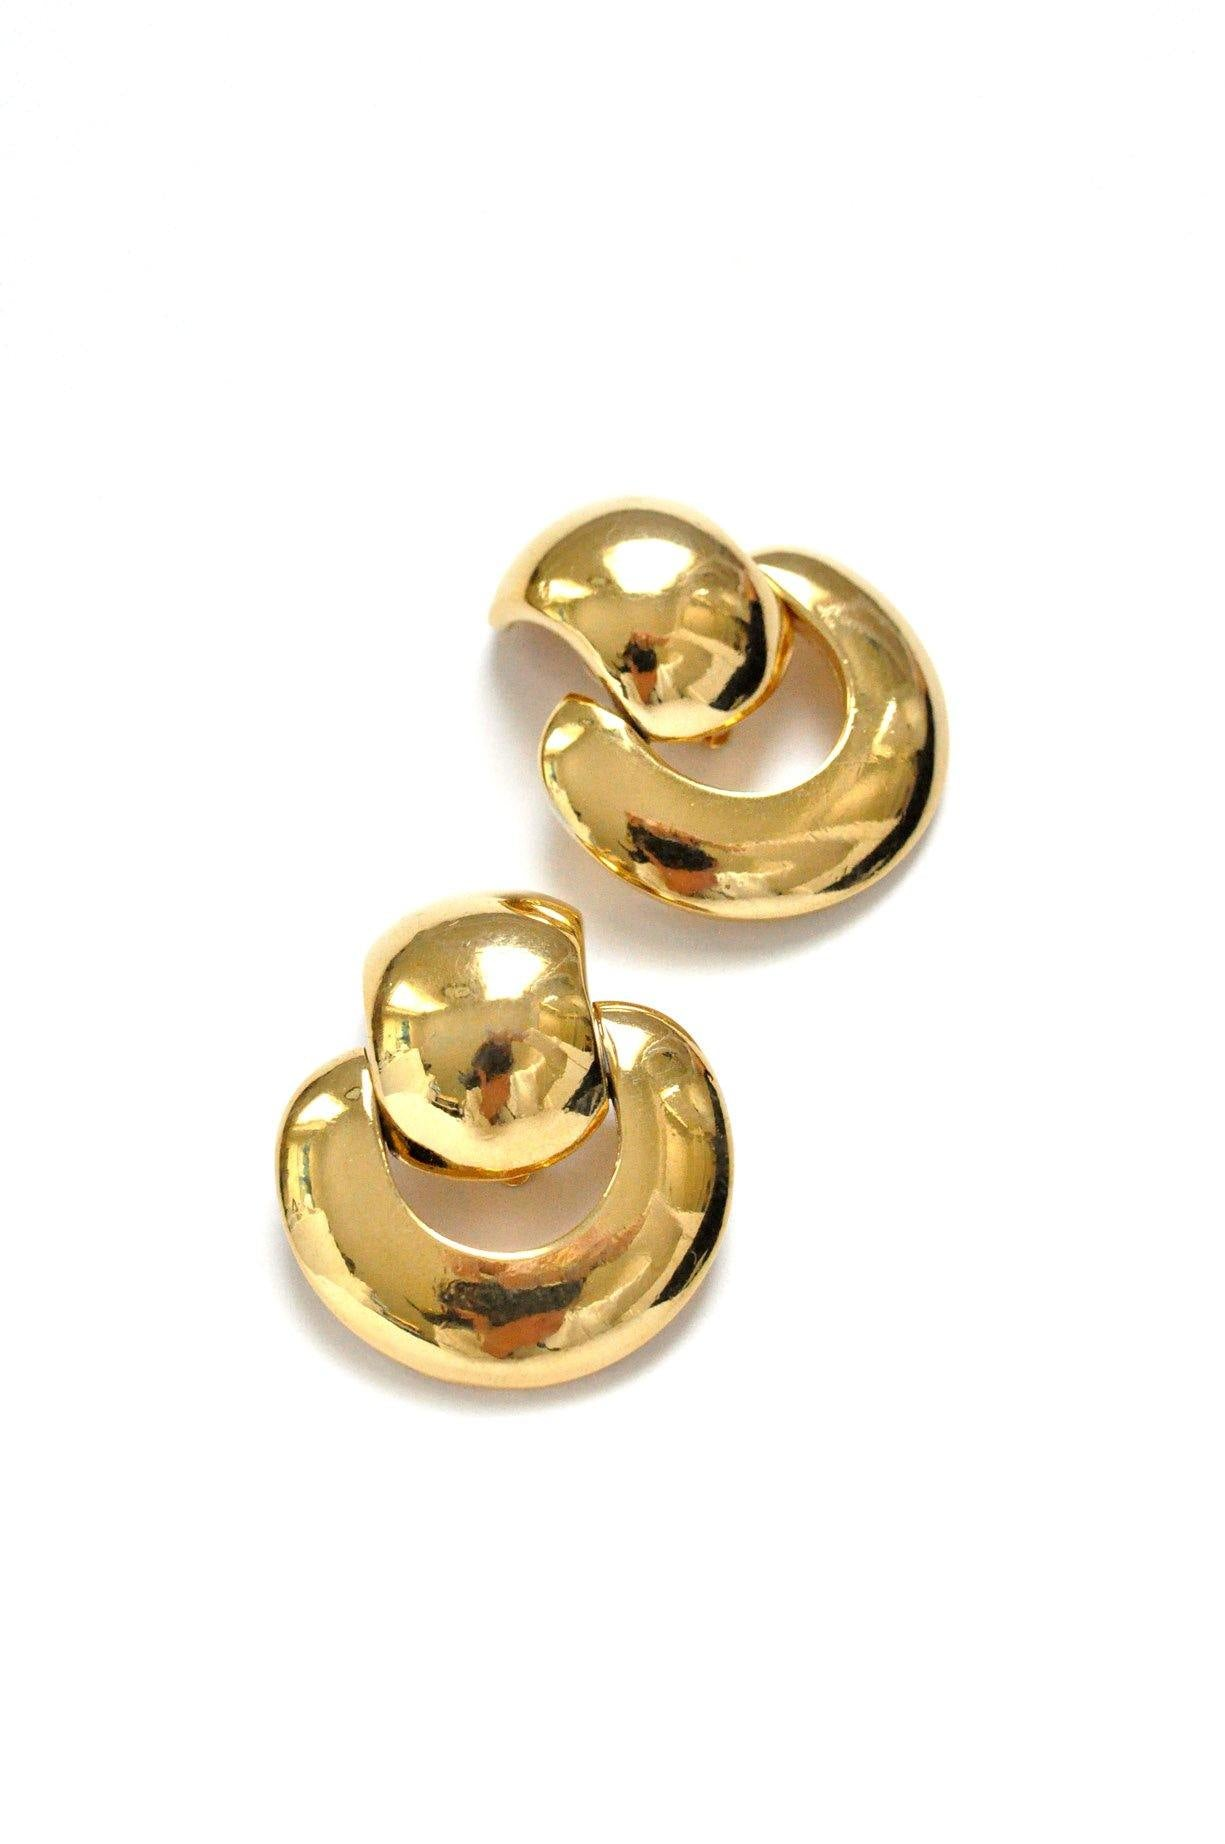 Gold Door Knocker Clip-on Earrings